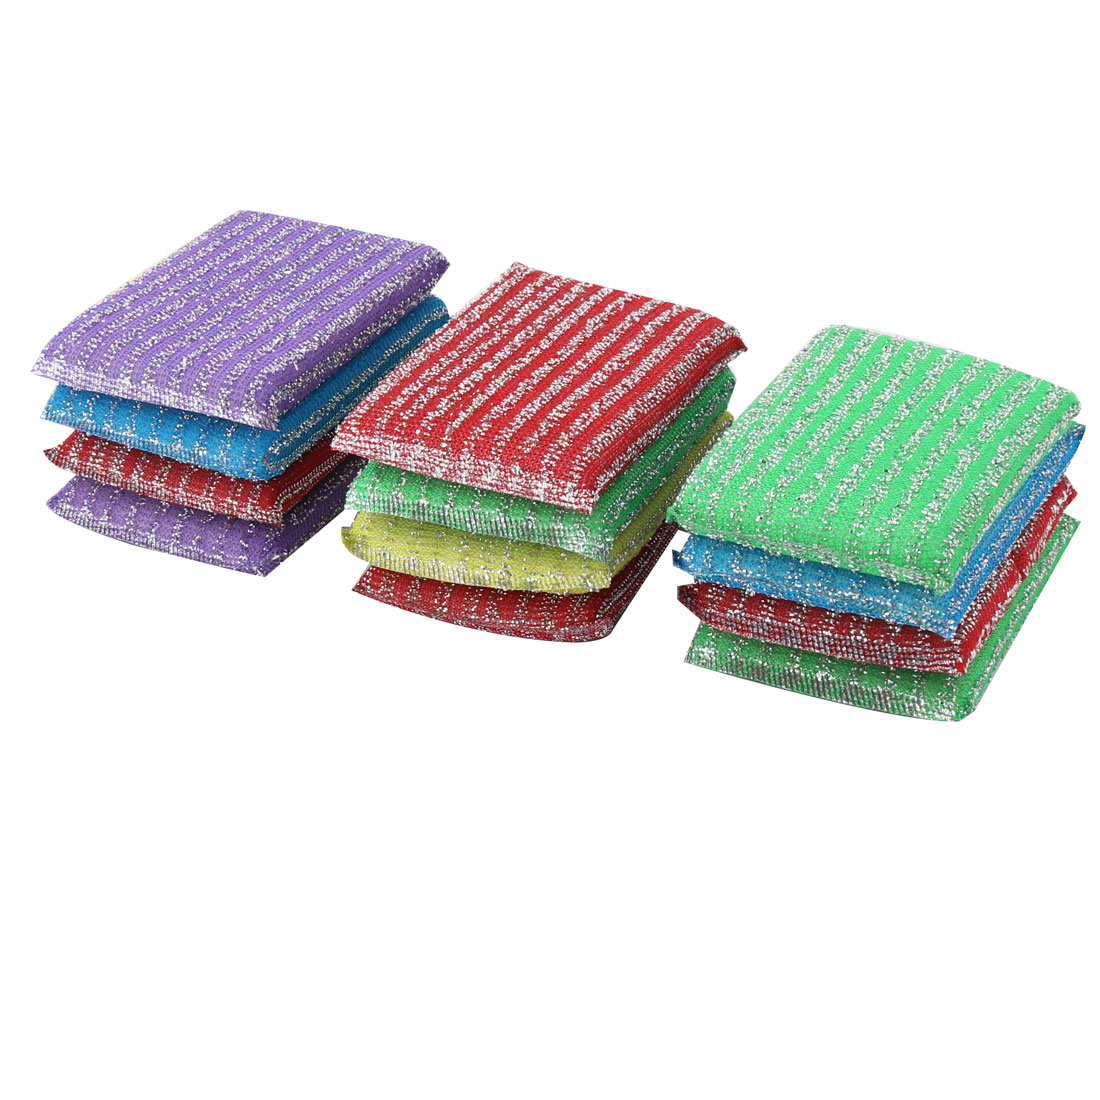 Scouring Pads Bowl Dish Wash Scourer Scrubber Cleaning Pads 12pcs